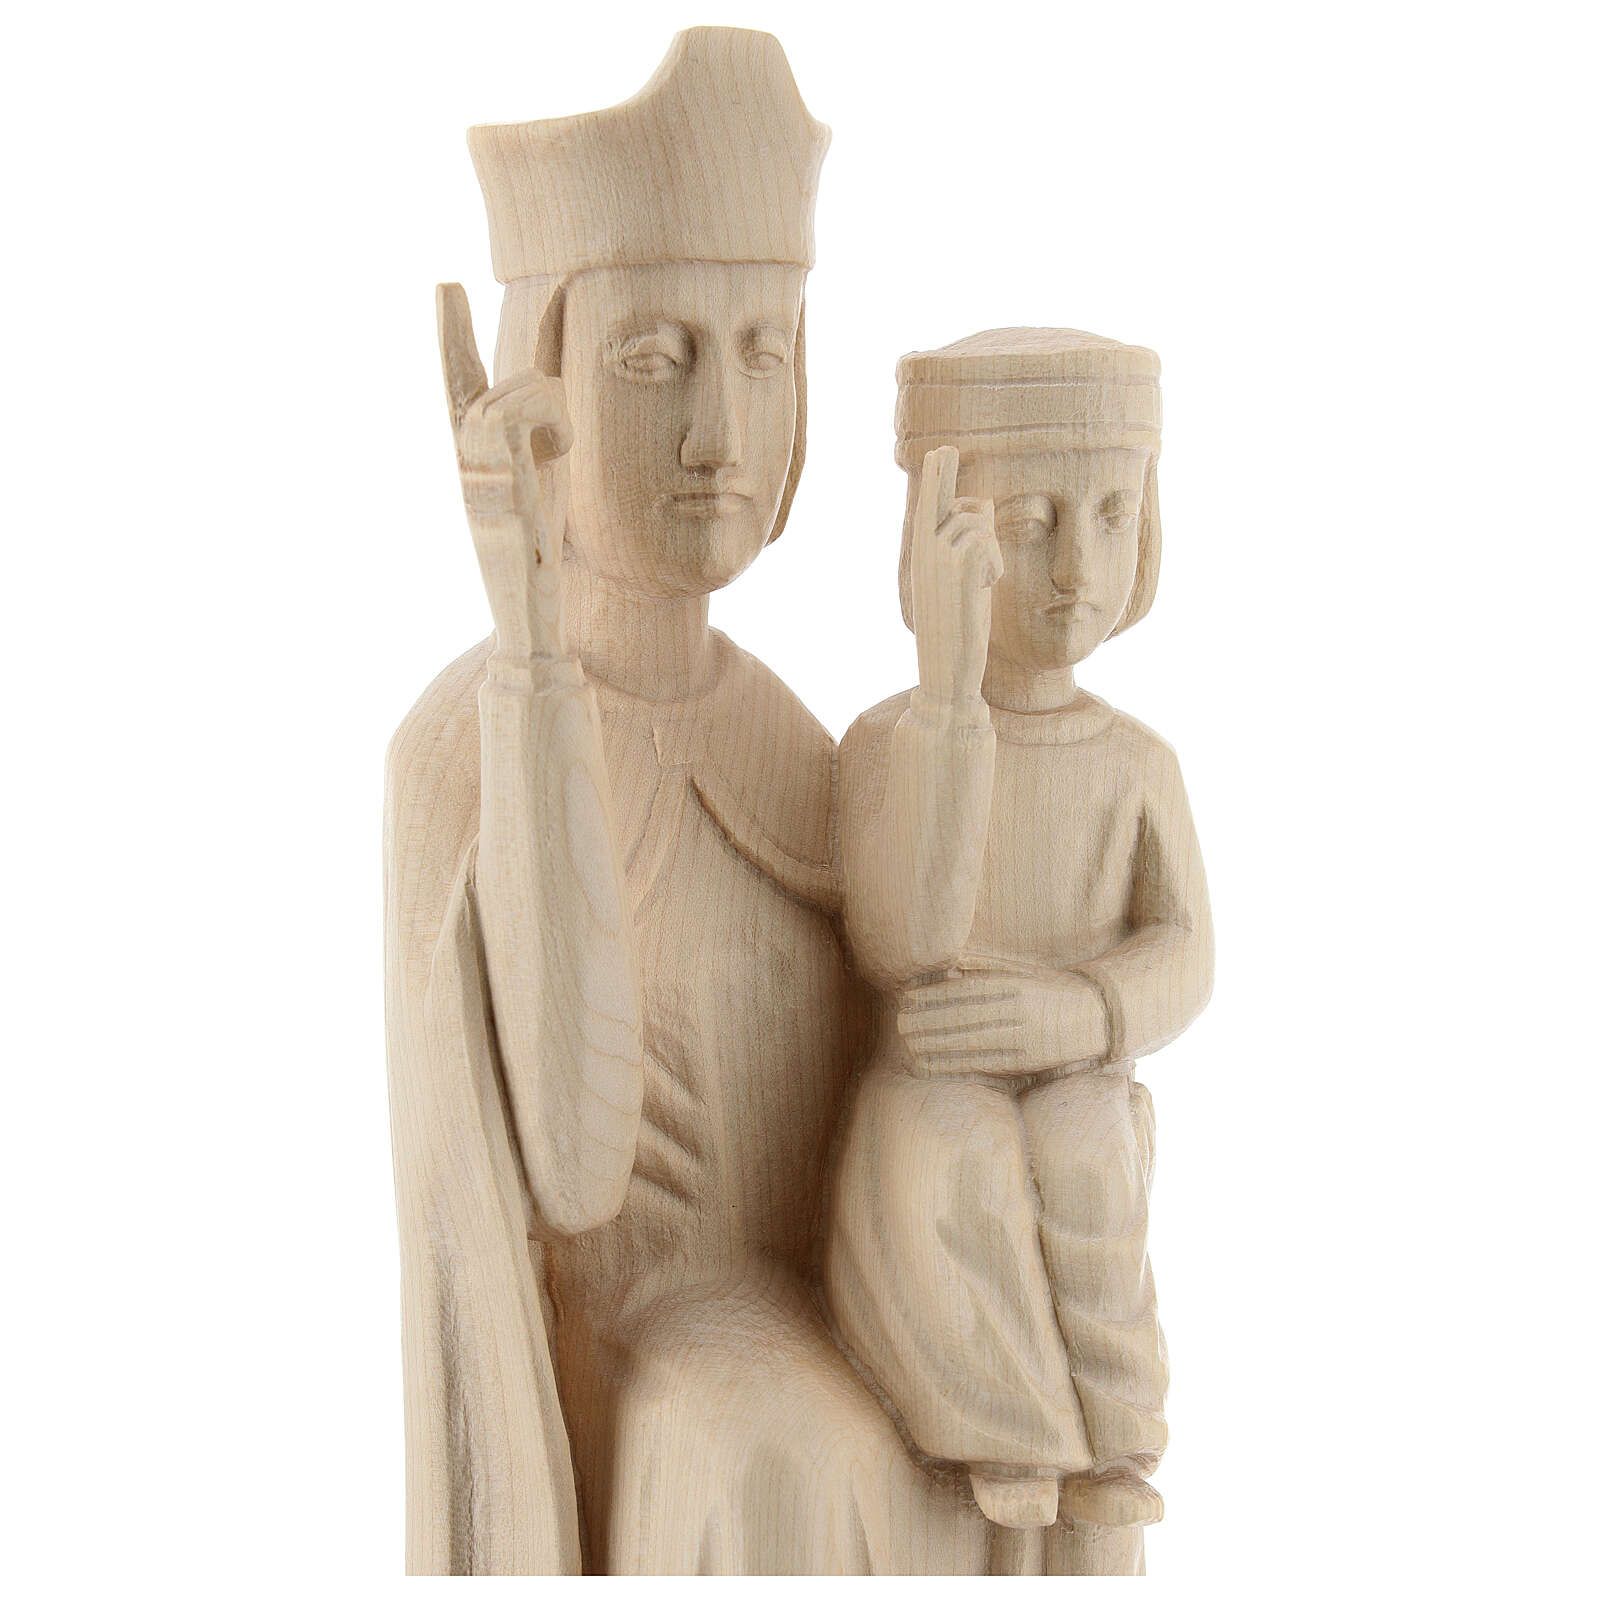 Mary with baby statue in Valgardena wood 28cm romanesque style, 4